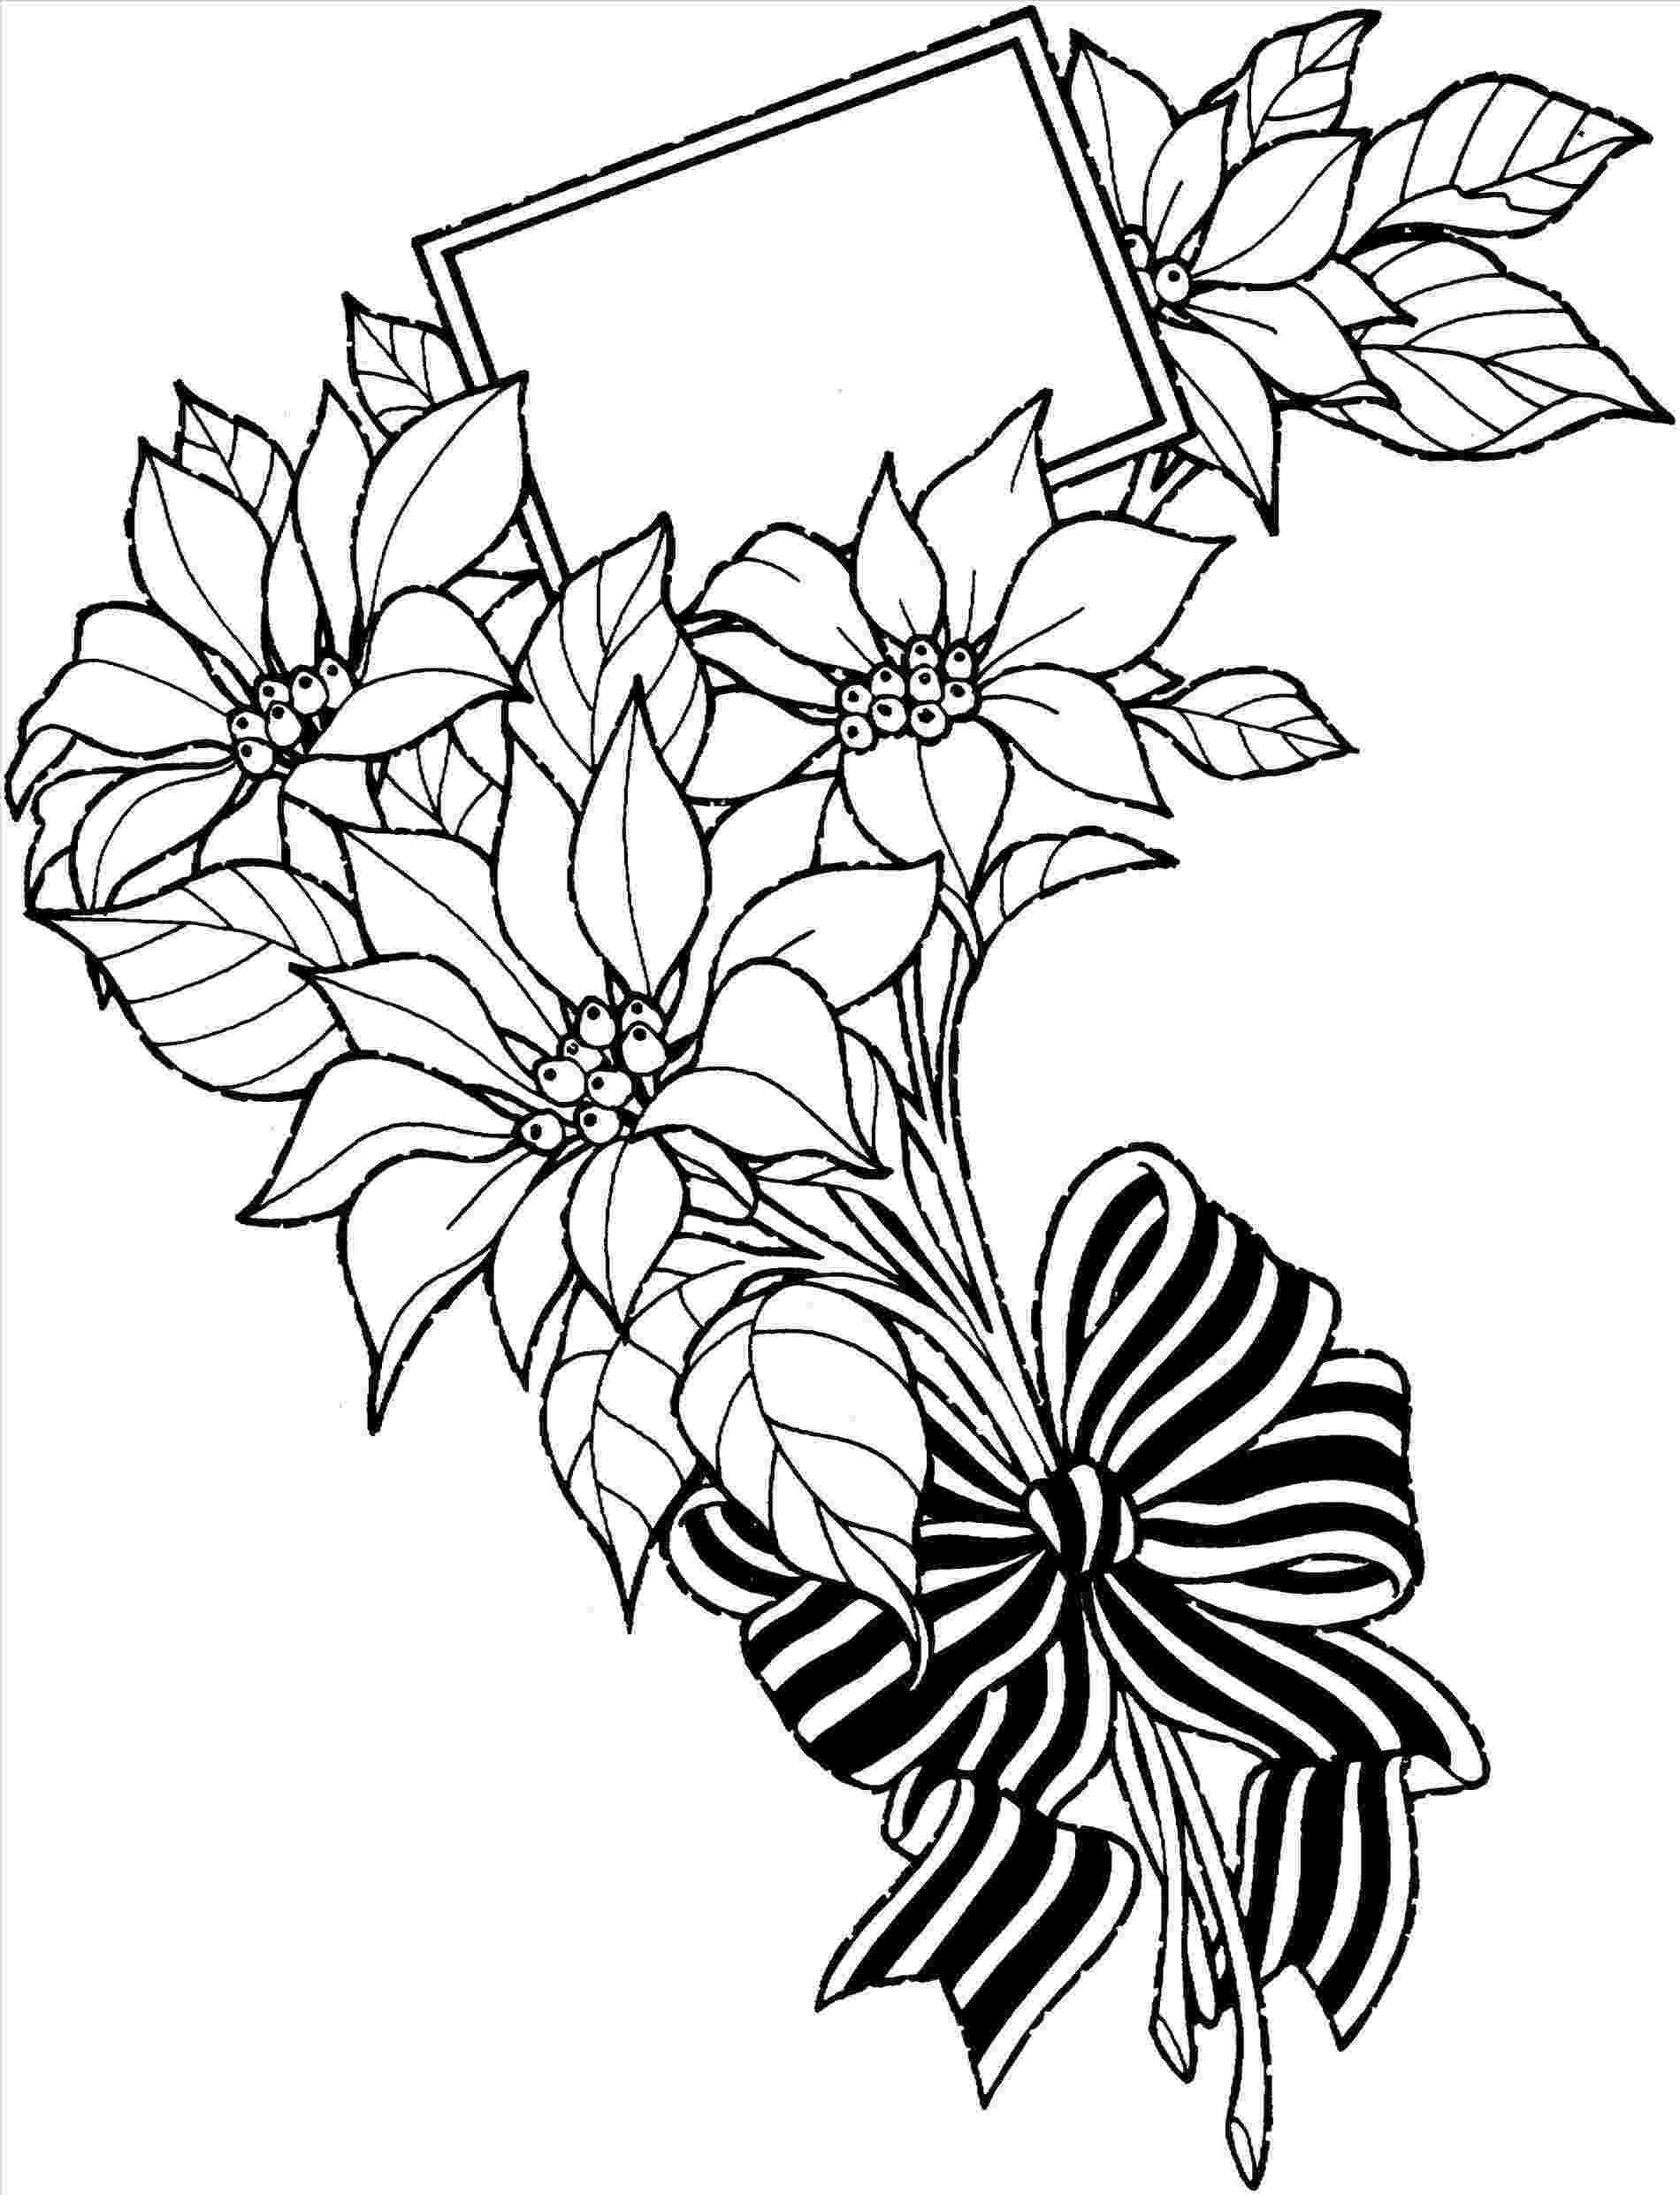 bunch of flowers colouring pages 43 best sketches of flowers in a vase images flower bunch pages colouring flowers of